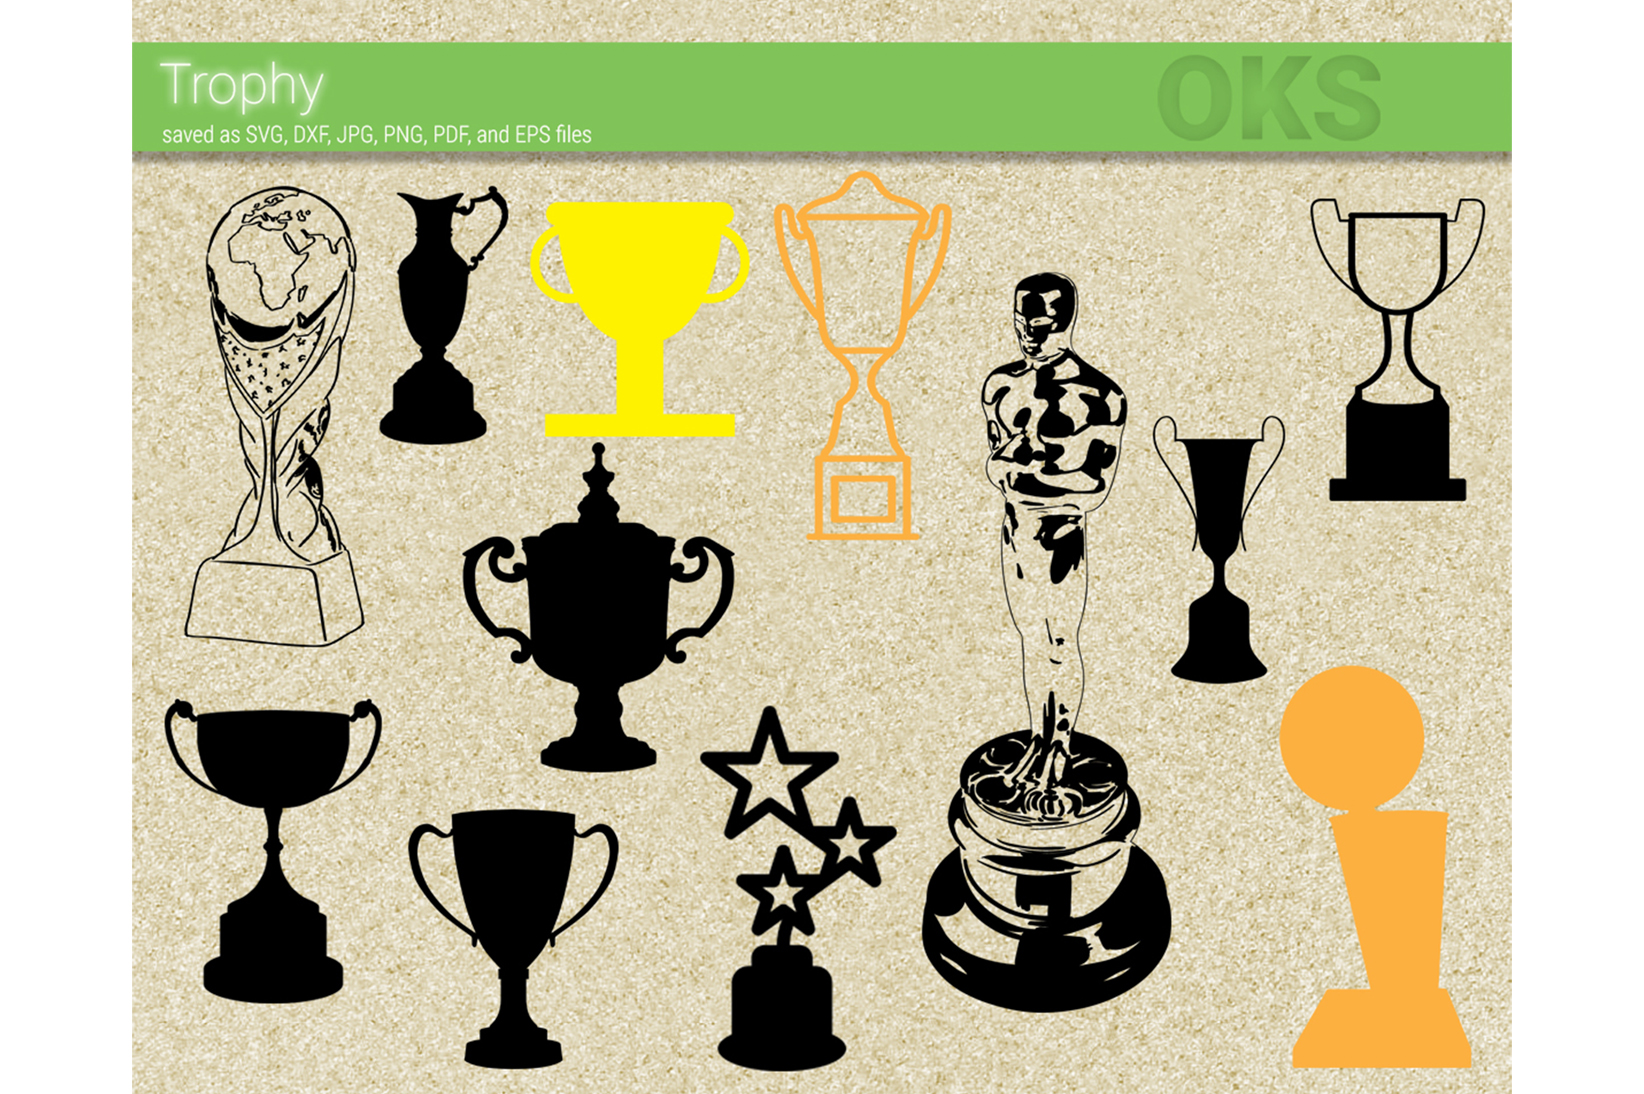 Download Free Trophy Graphic By Crafteroks Creative Fabrica for Cricut Explore, Silhouette and other cutting machines.